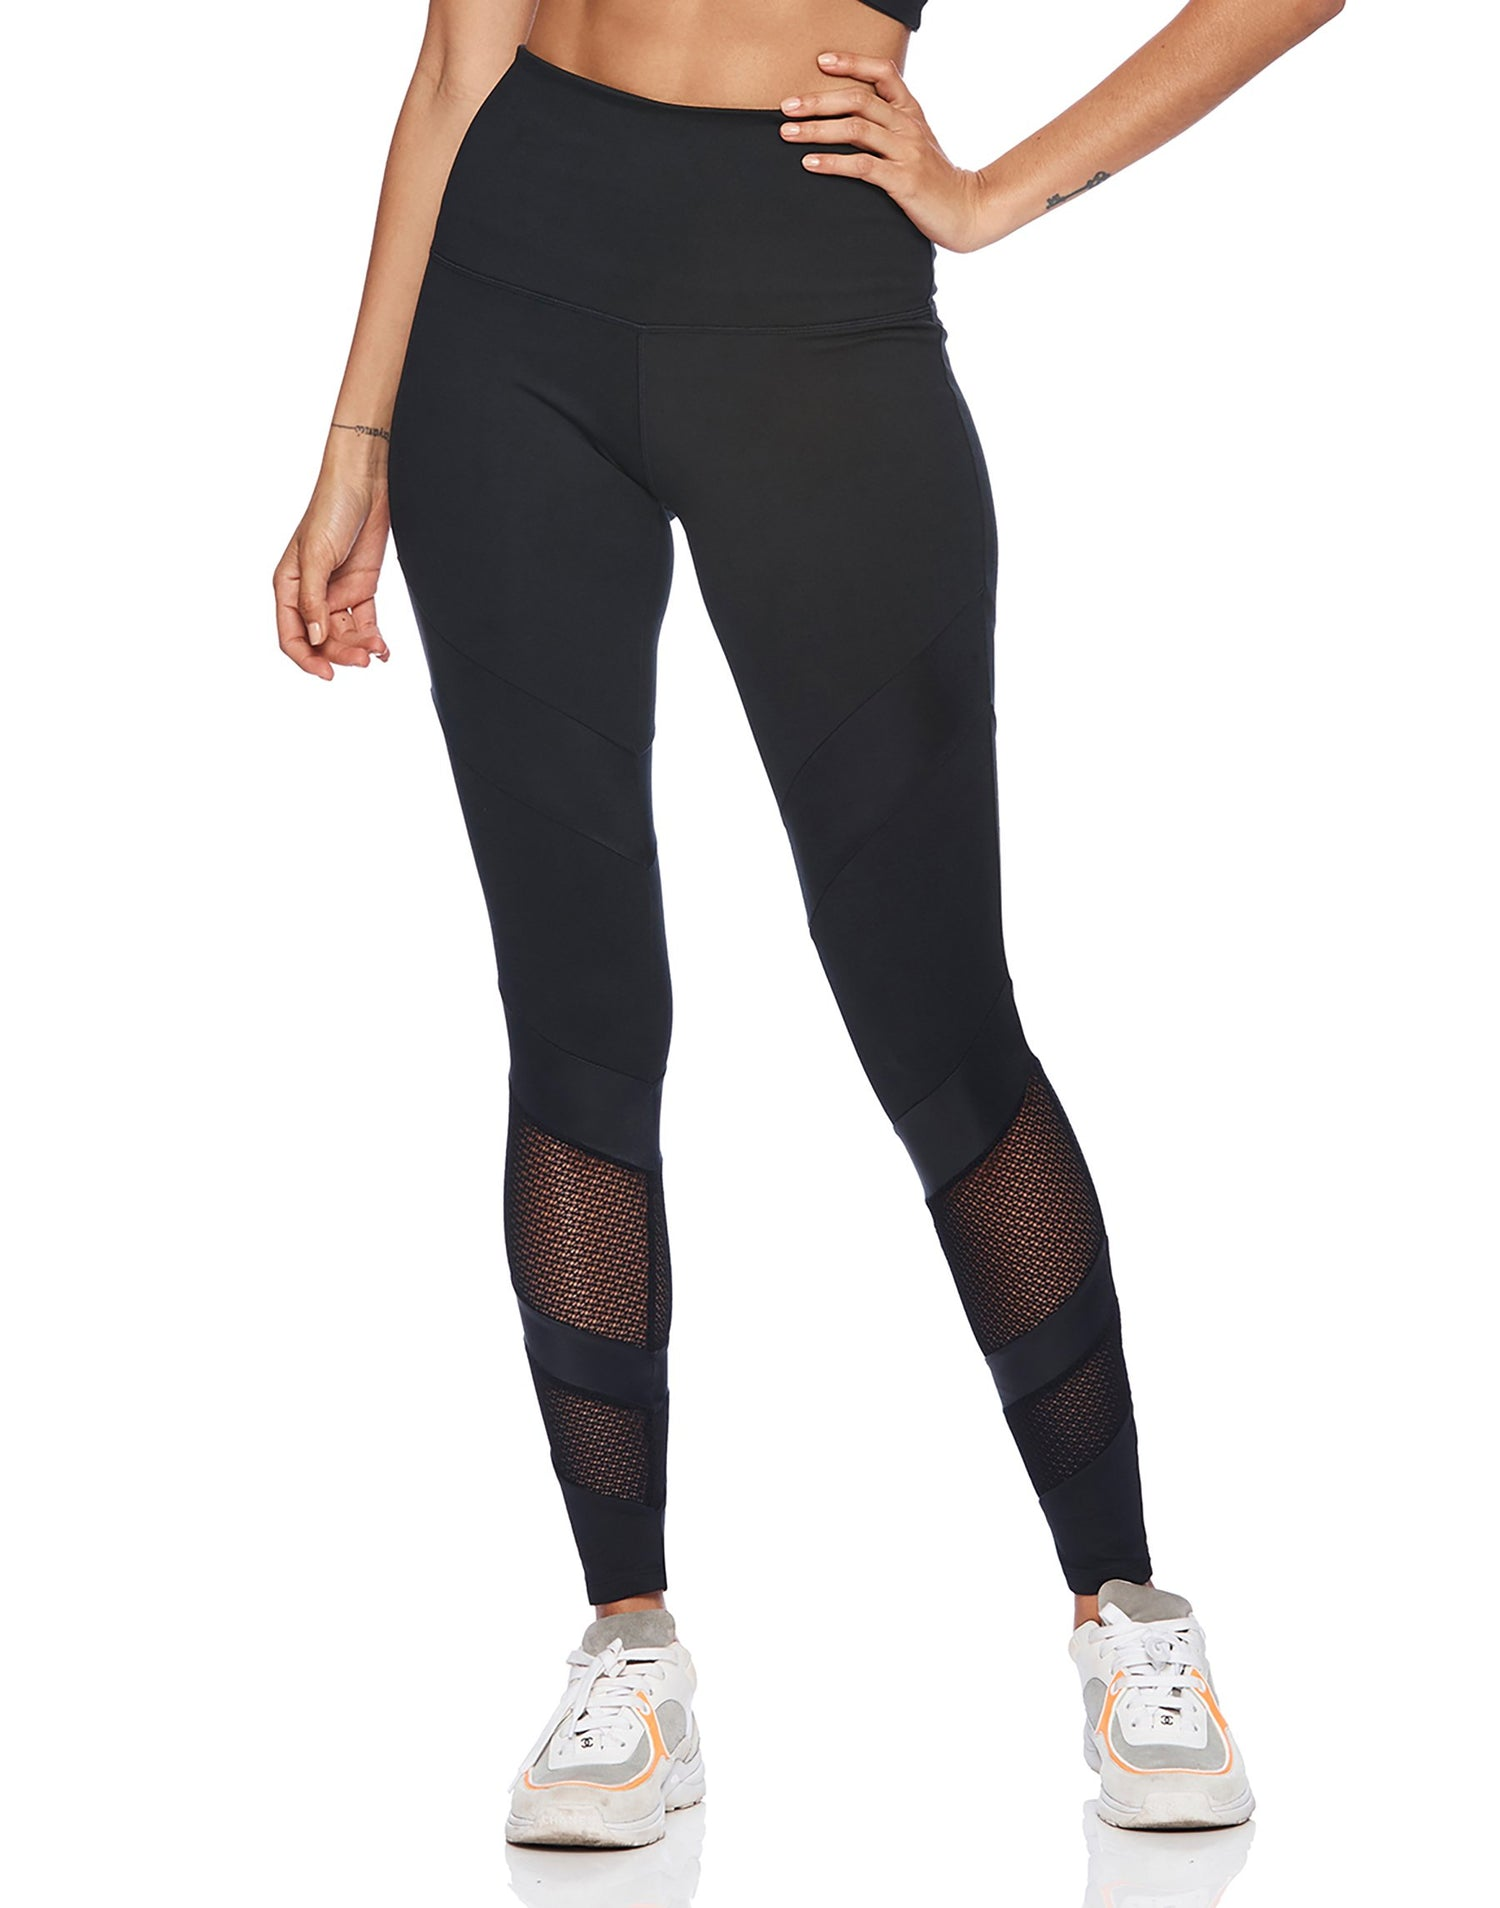 Active High Waisted Legging in Black for Workout - front view